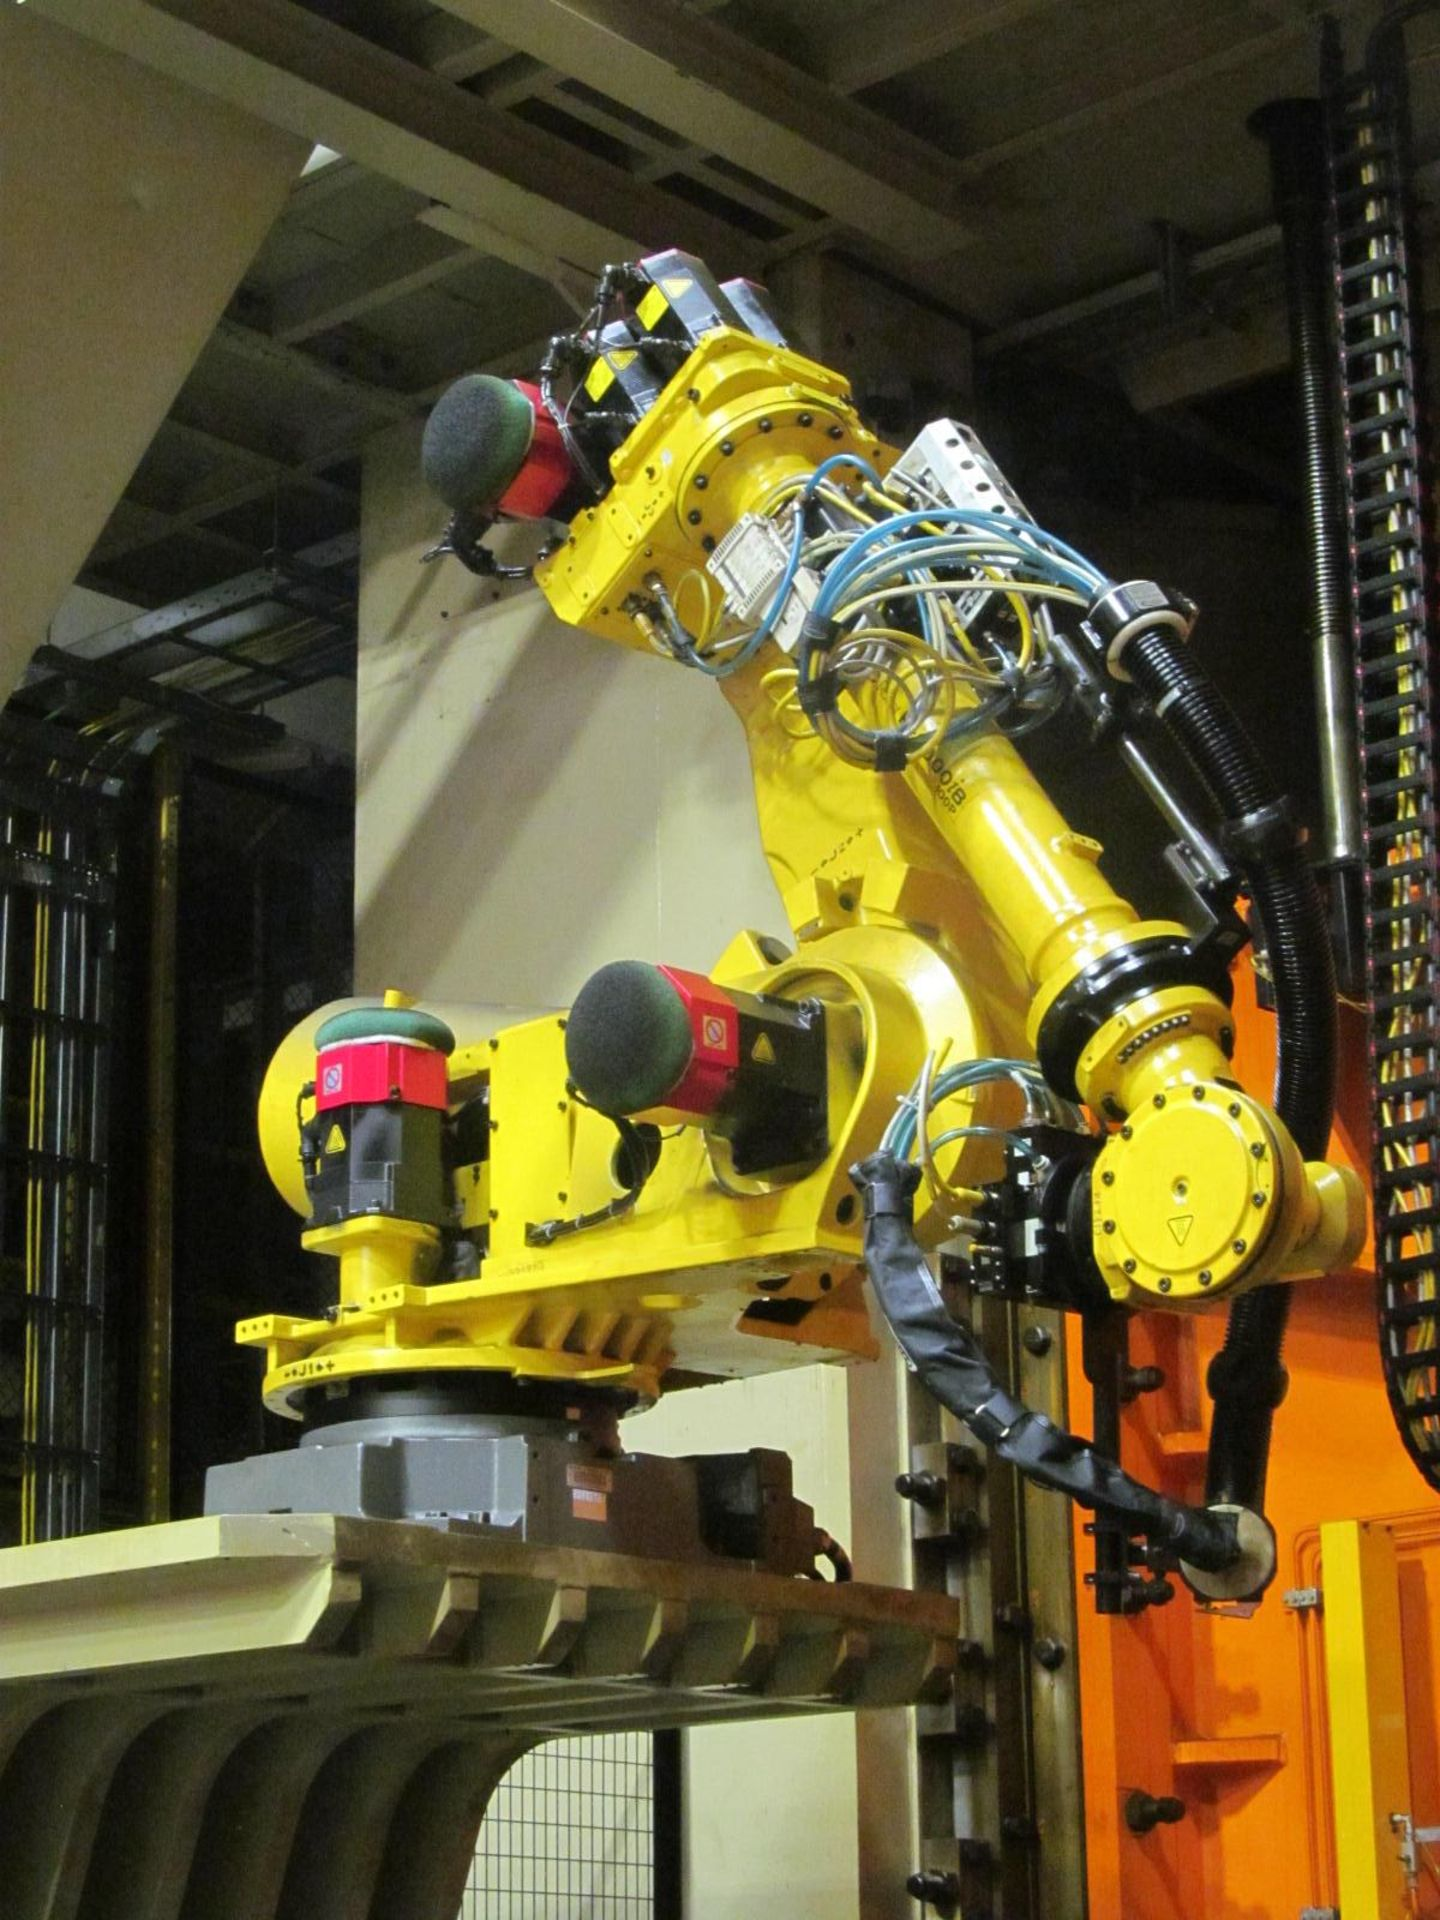 Lot 7 - 6-AXIS FANUC 2000iB 100P LOADING ROBOT w/ R-30iA CONTROL & TEACH PAD, *PLEASE NOTE: SUBJECT TO